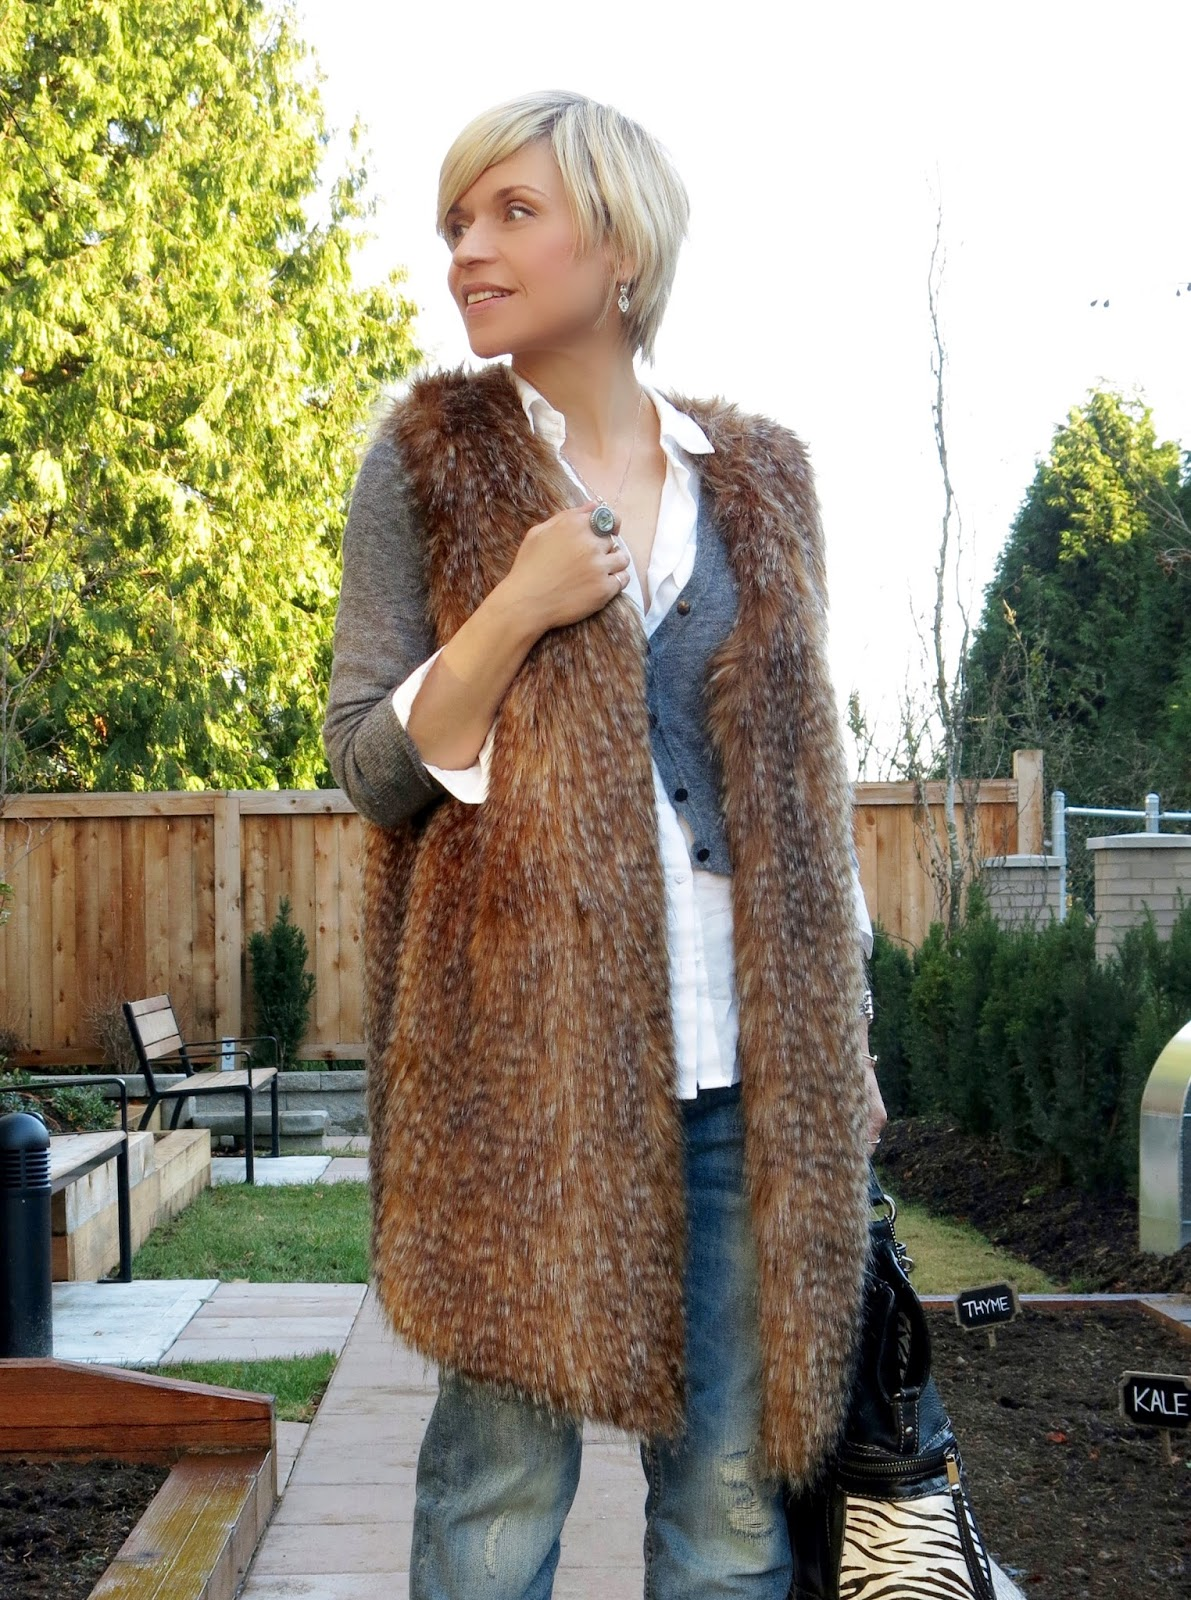 styling boyfriend jeans with a white shirt, shrunken cardigan, and furry vest